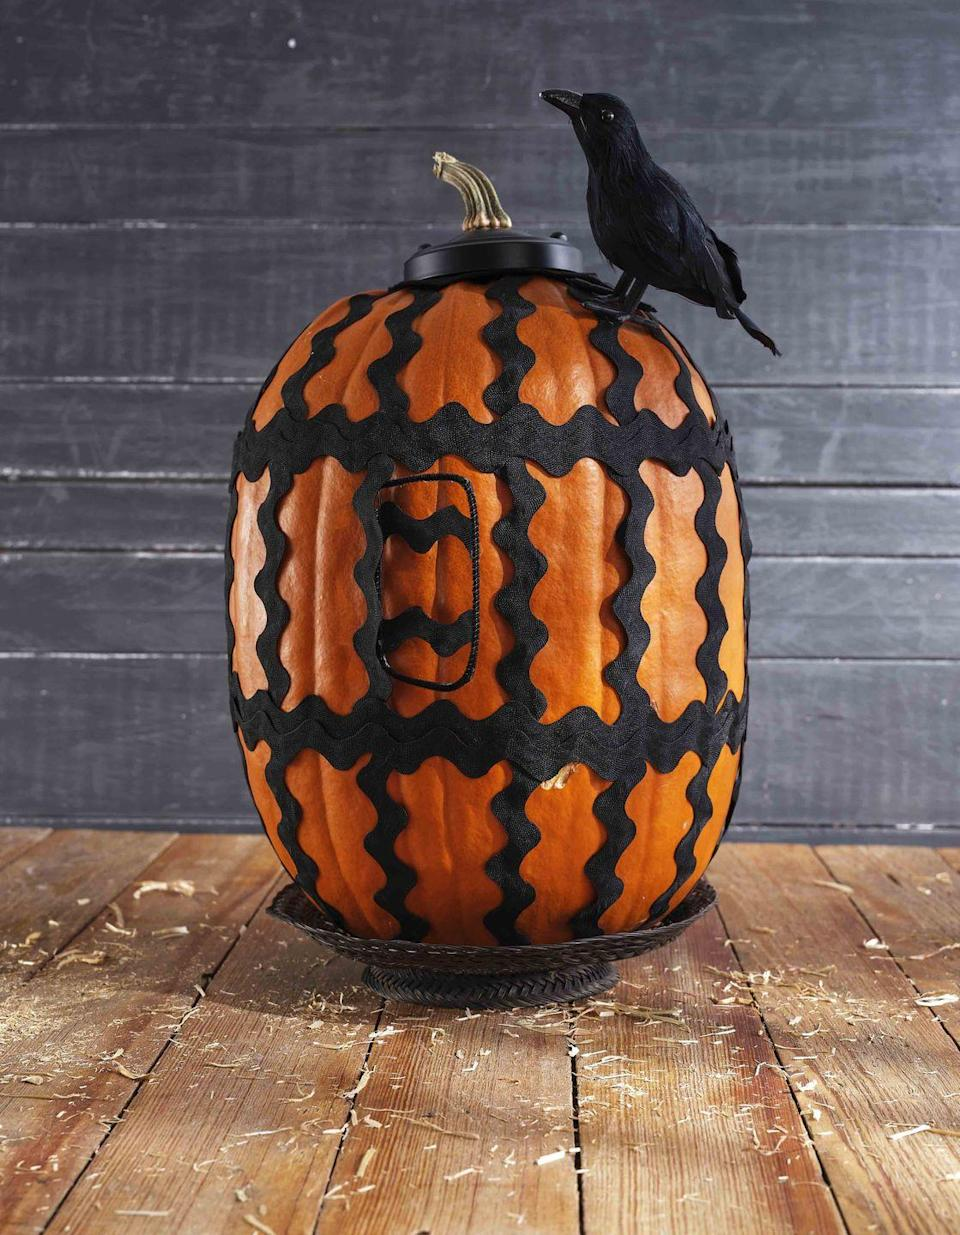 <p>Wrap and oblong pumpkin with large black rickrack to create the wires of a spooky birdcage. Friendly crow optional!<strong><br></strong></p><p><strong>Make the pumpkin:</strong> Remove the stem from a large oblong pumpkin; reserve. Attach lengths of large rickrack to the top and bottom of the pumpkin, spacing evenly, with hot-glue. Attach two double layers of large rickrack horizontally at the bottom and top third with hot-glue. Fashion a door from black pipe cleaner, and attach lengths of rickrack to the back; wedge under one of the vertical lengths of rickrack. Attach pumpkin stem to the center of a black ceiling light canopy, and place on top of pumpkin. Hot-glue a toy crow to the pumpkin and set on a black plate or cake stand. </p>